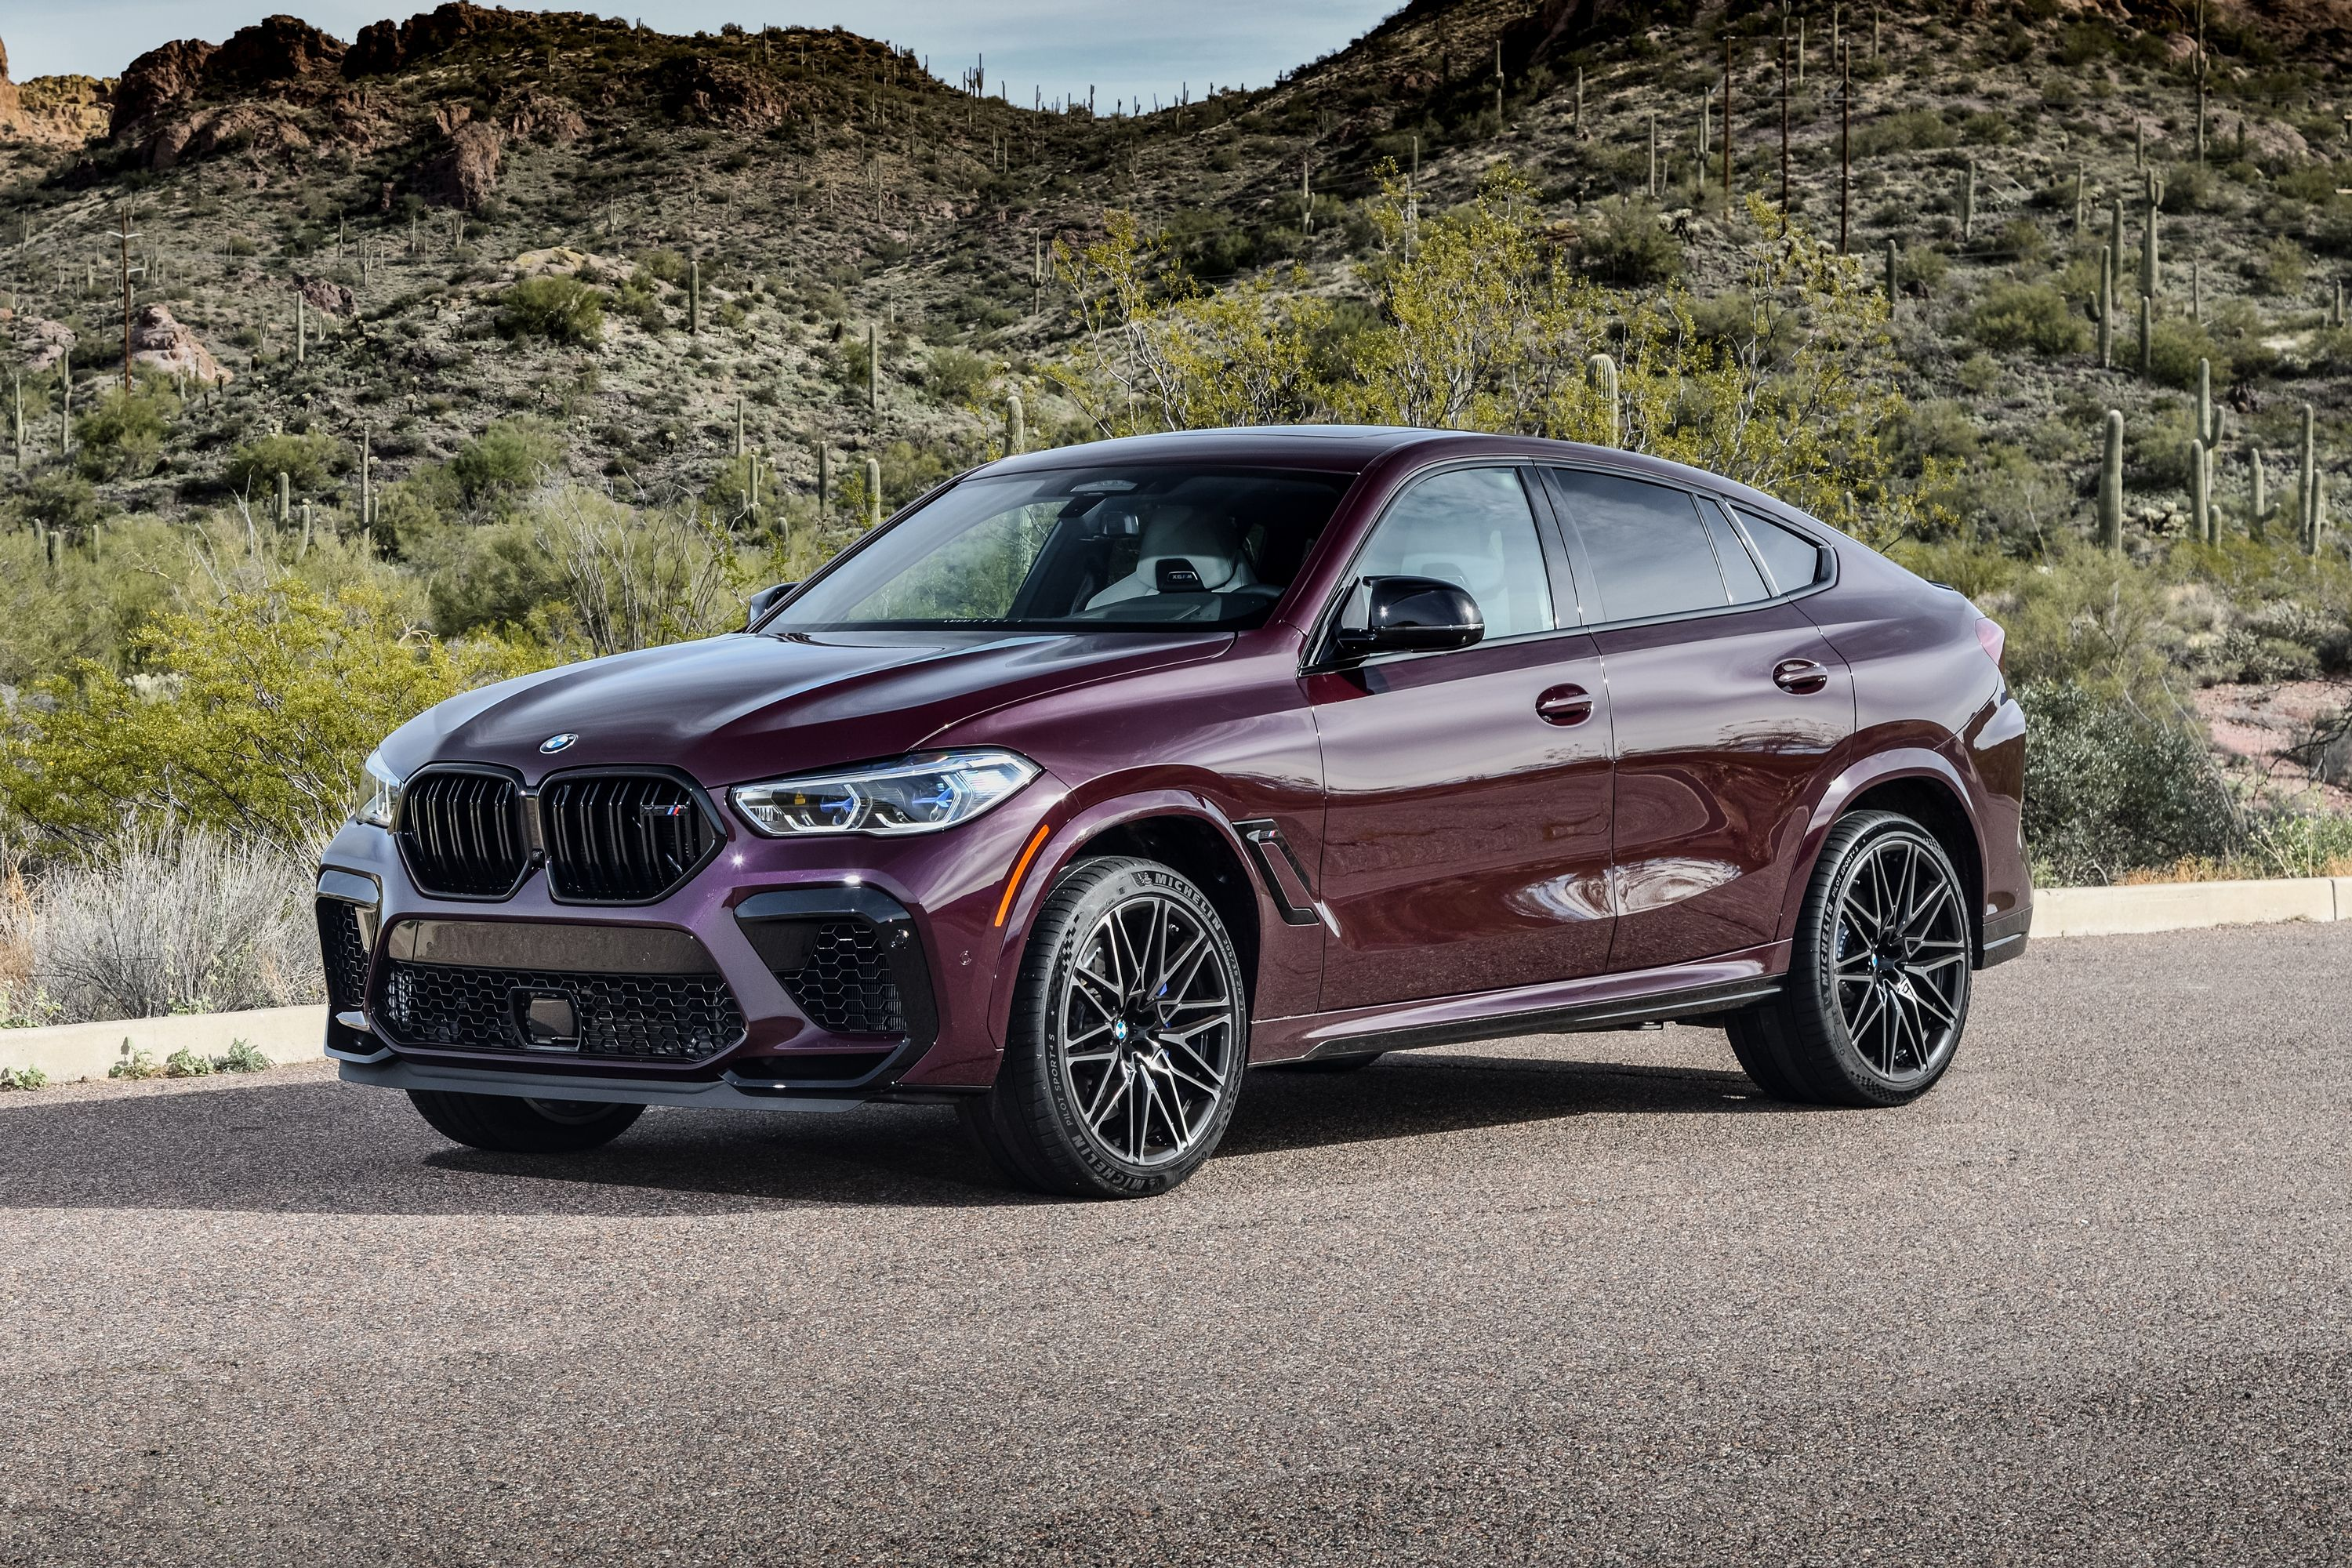 2021 Bmw X6 M Review Pricing And Specs